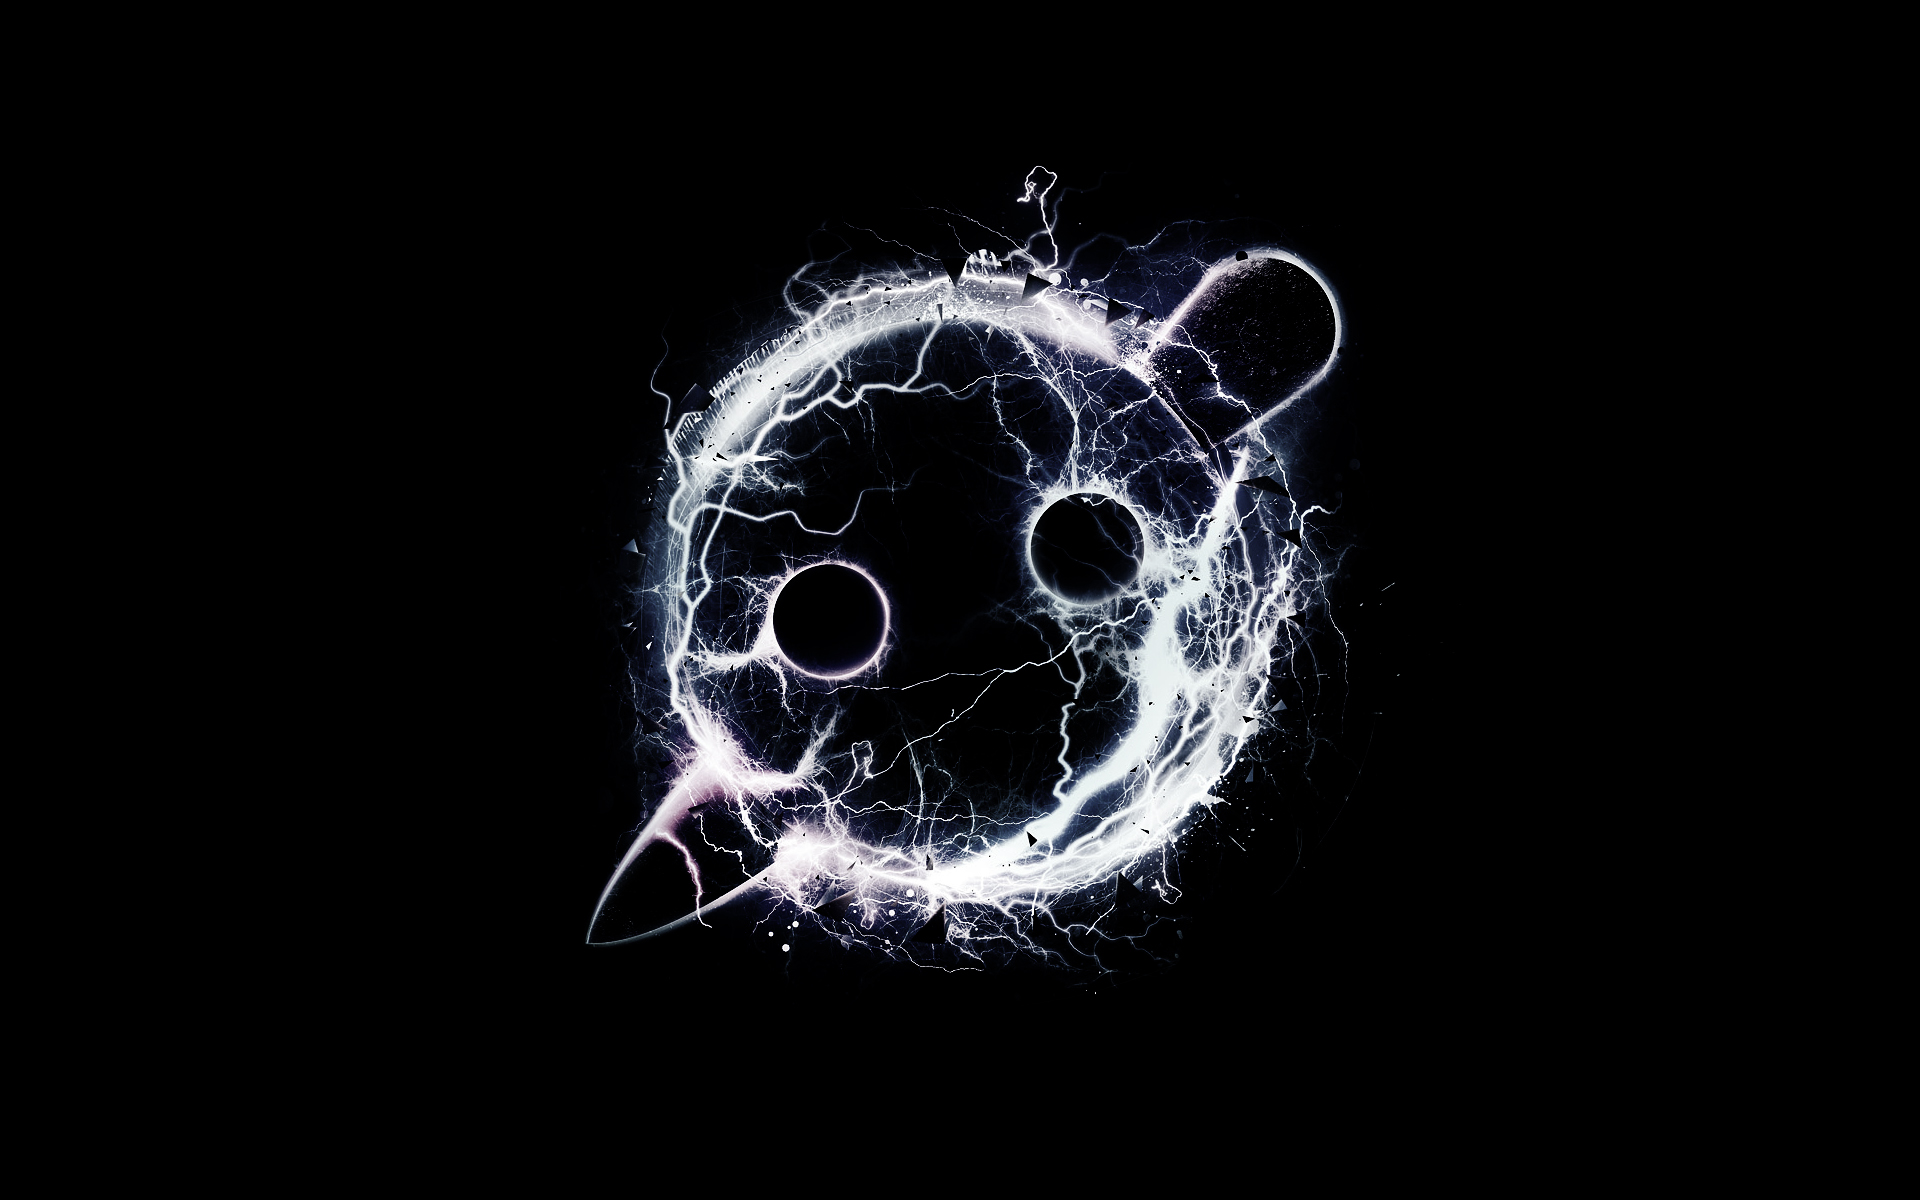 Knife Party Wallpaper